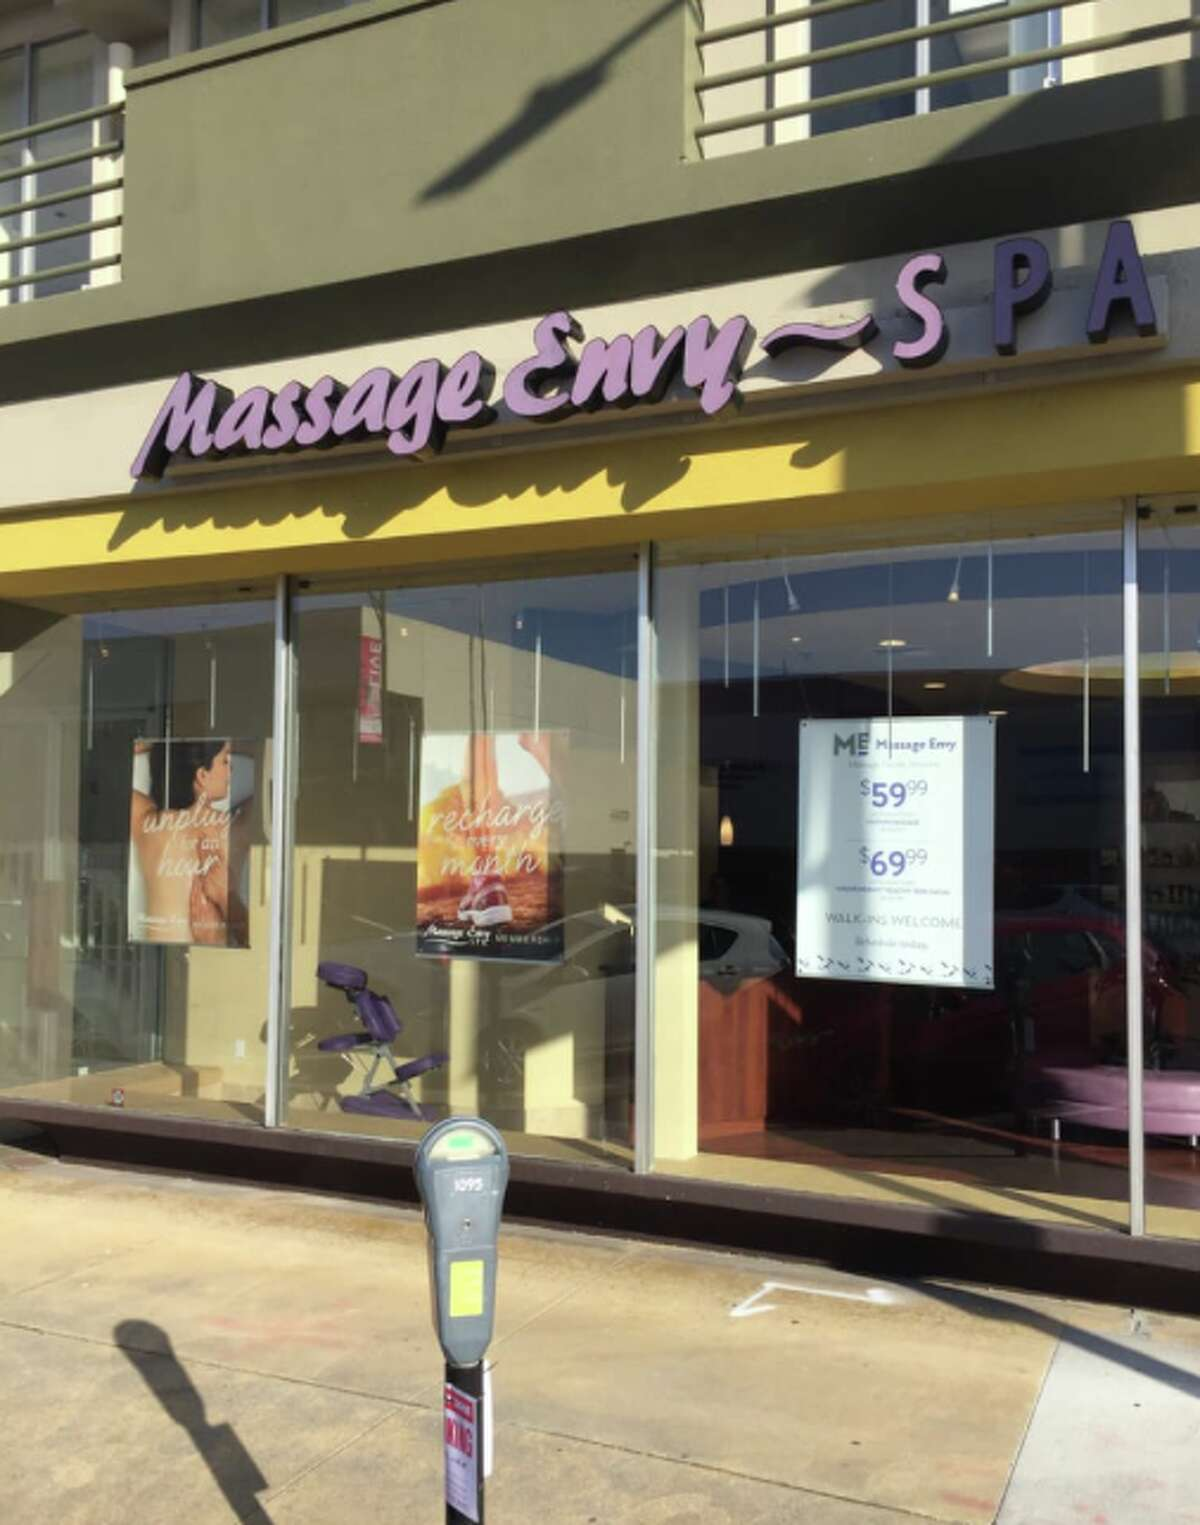 The Burlingame Massage Envy is one of the locations named in the lawsuit against the massage chain, accusing therapists of sexual assault.